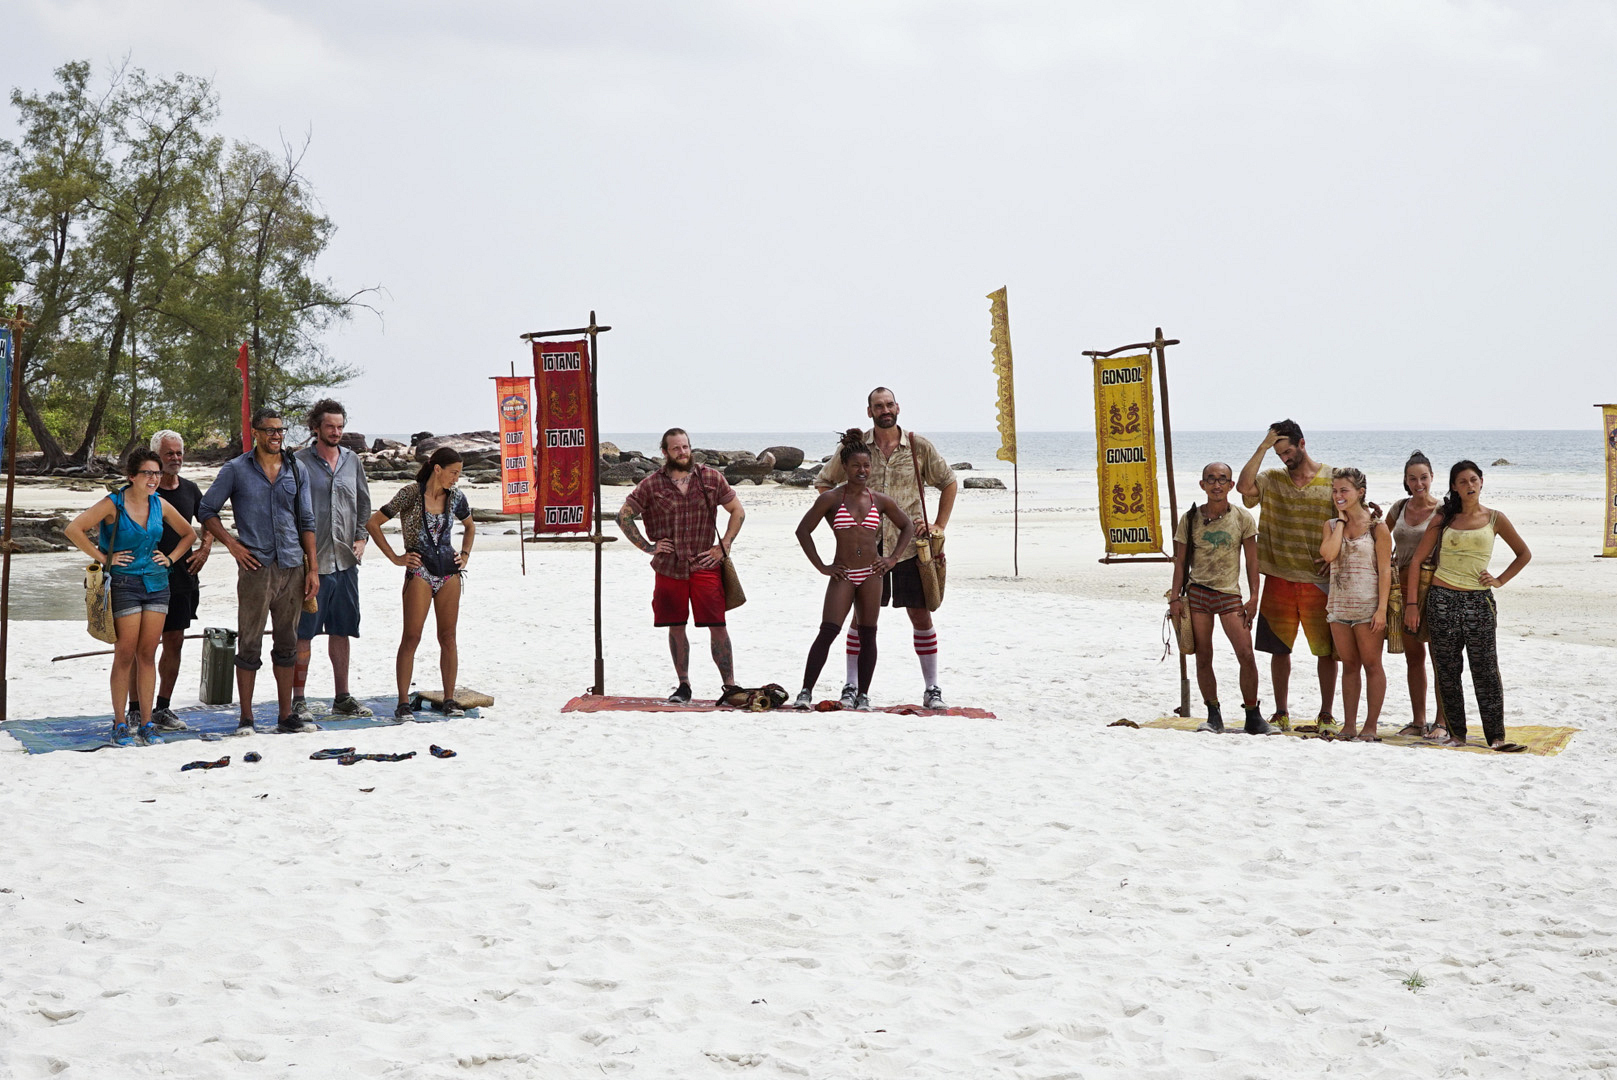 The castaways of Survivor: Kaoh Rong get ready for a big moment in the game.